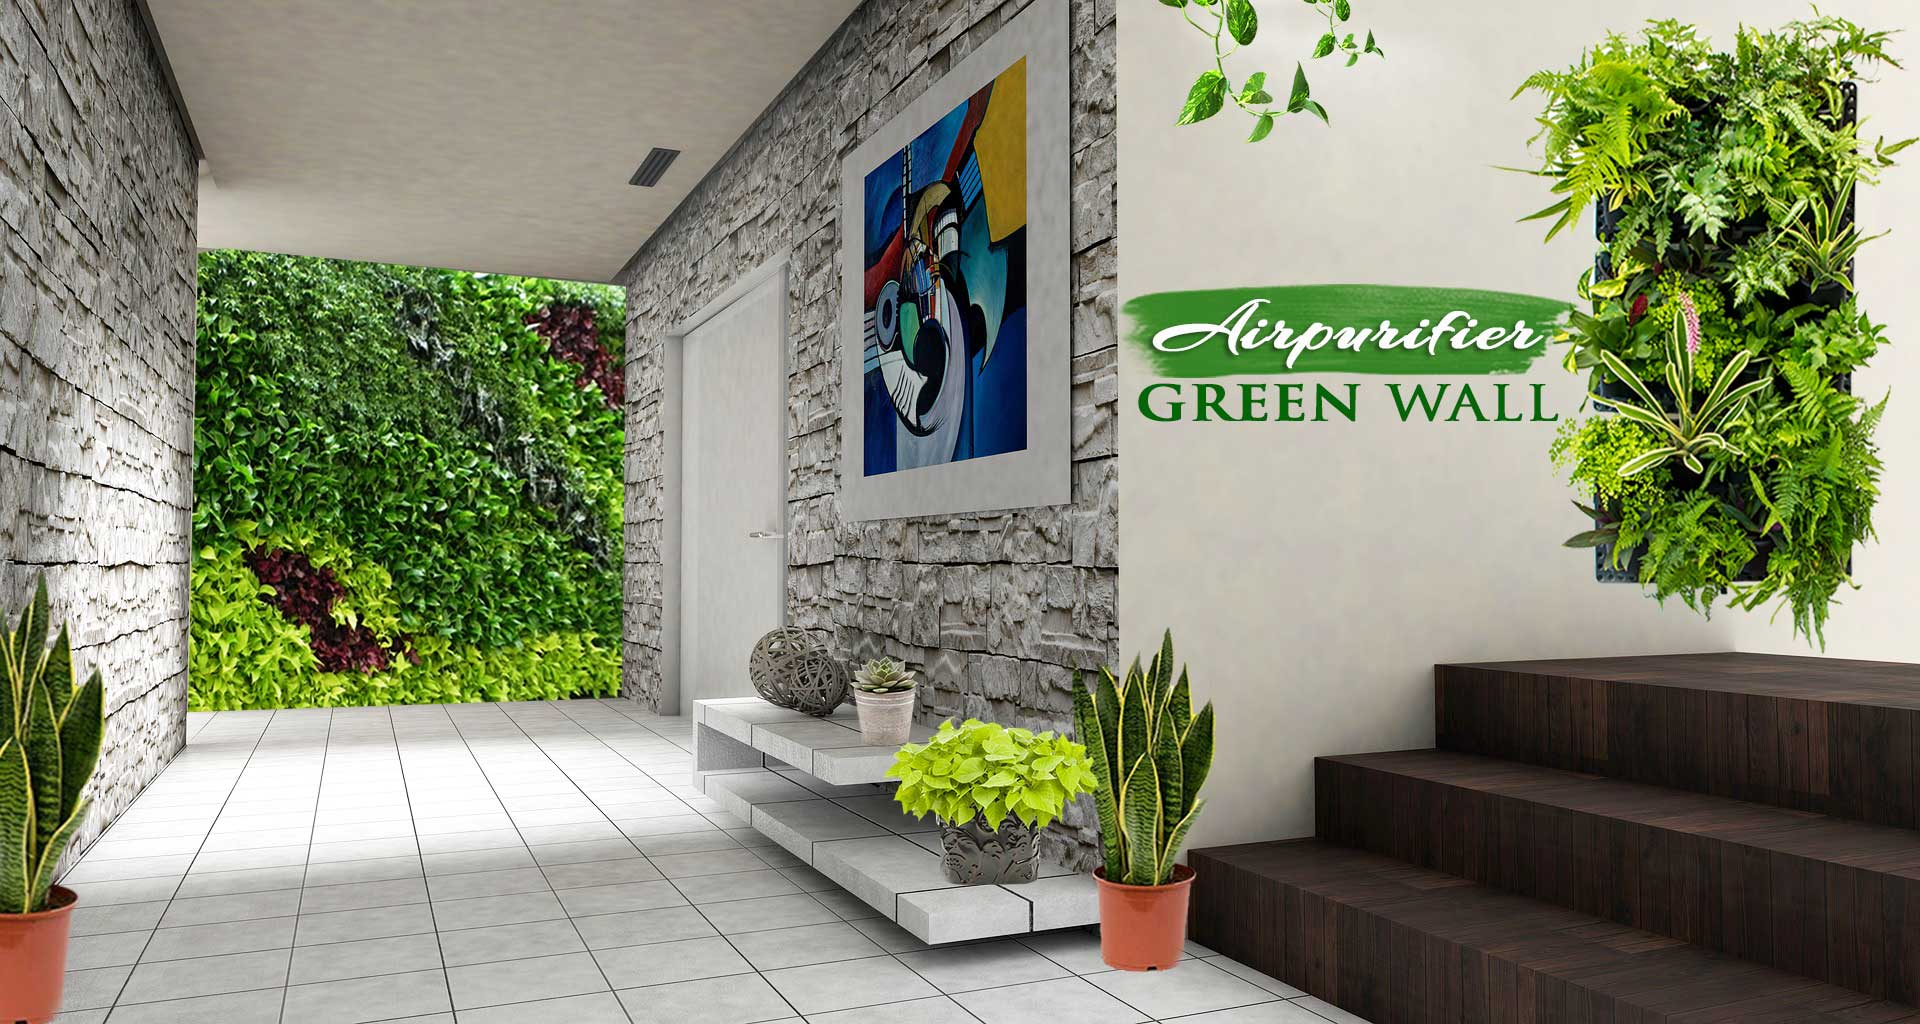 Air Purifier Green Wall Live Oxygen Wall - Green Wall India